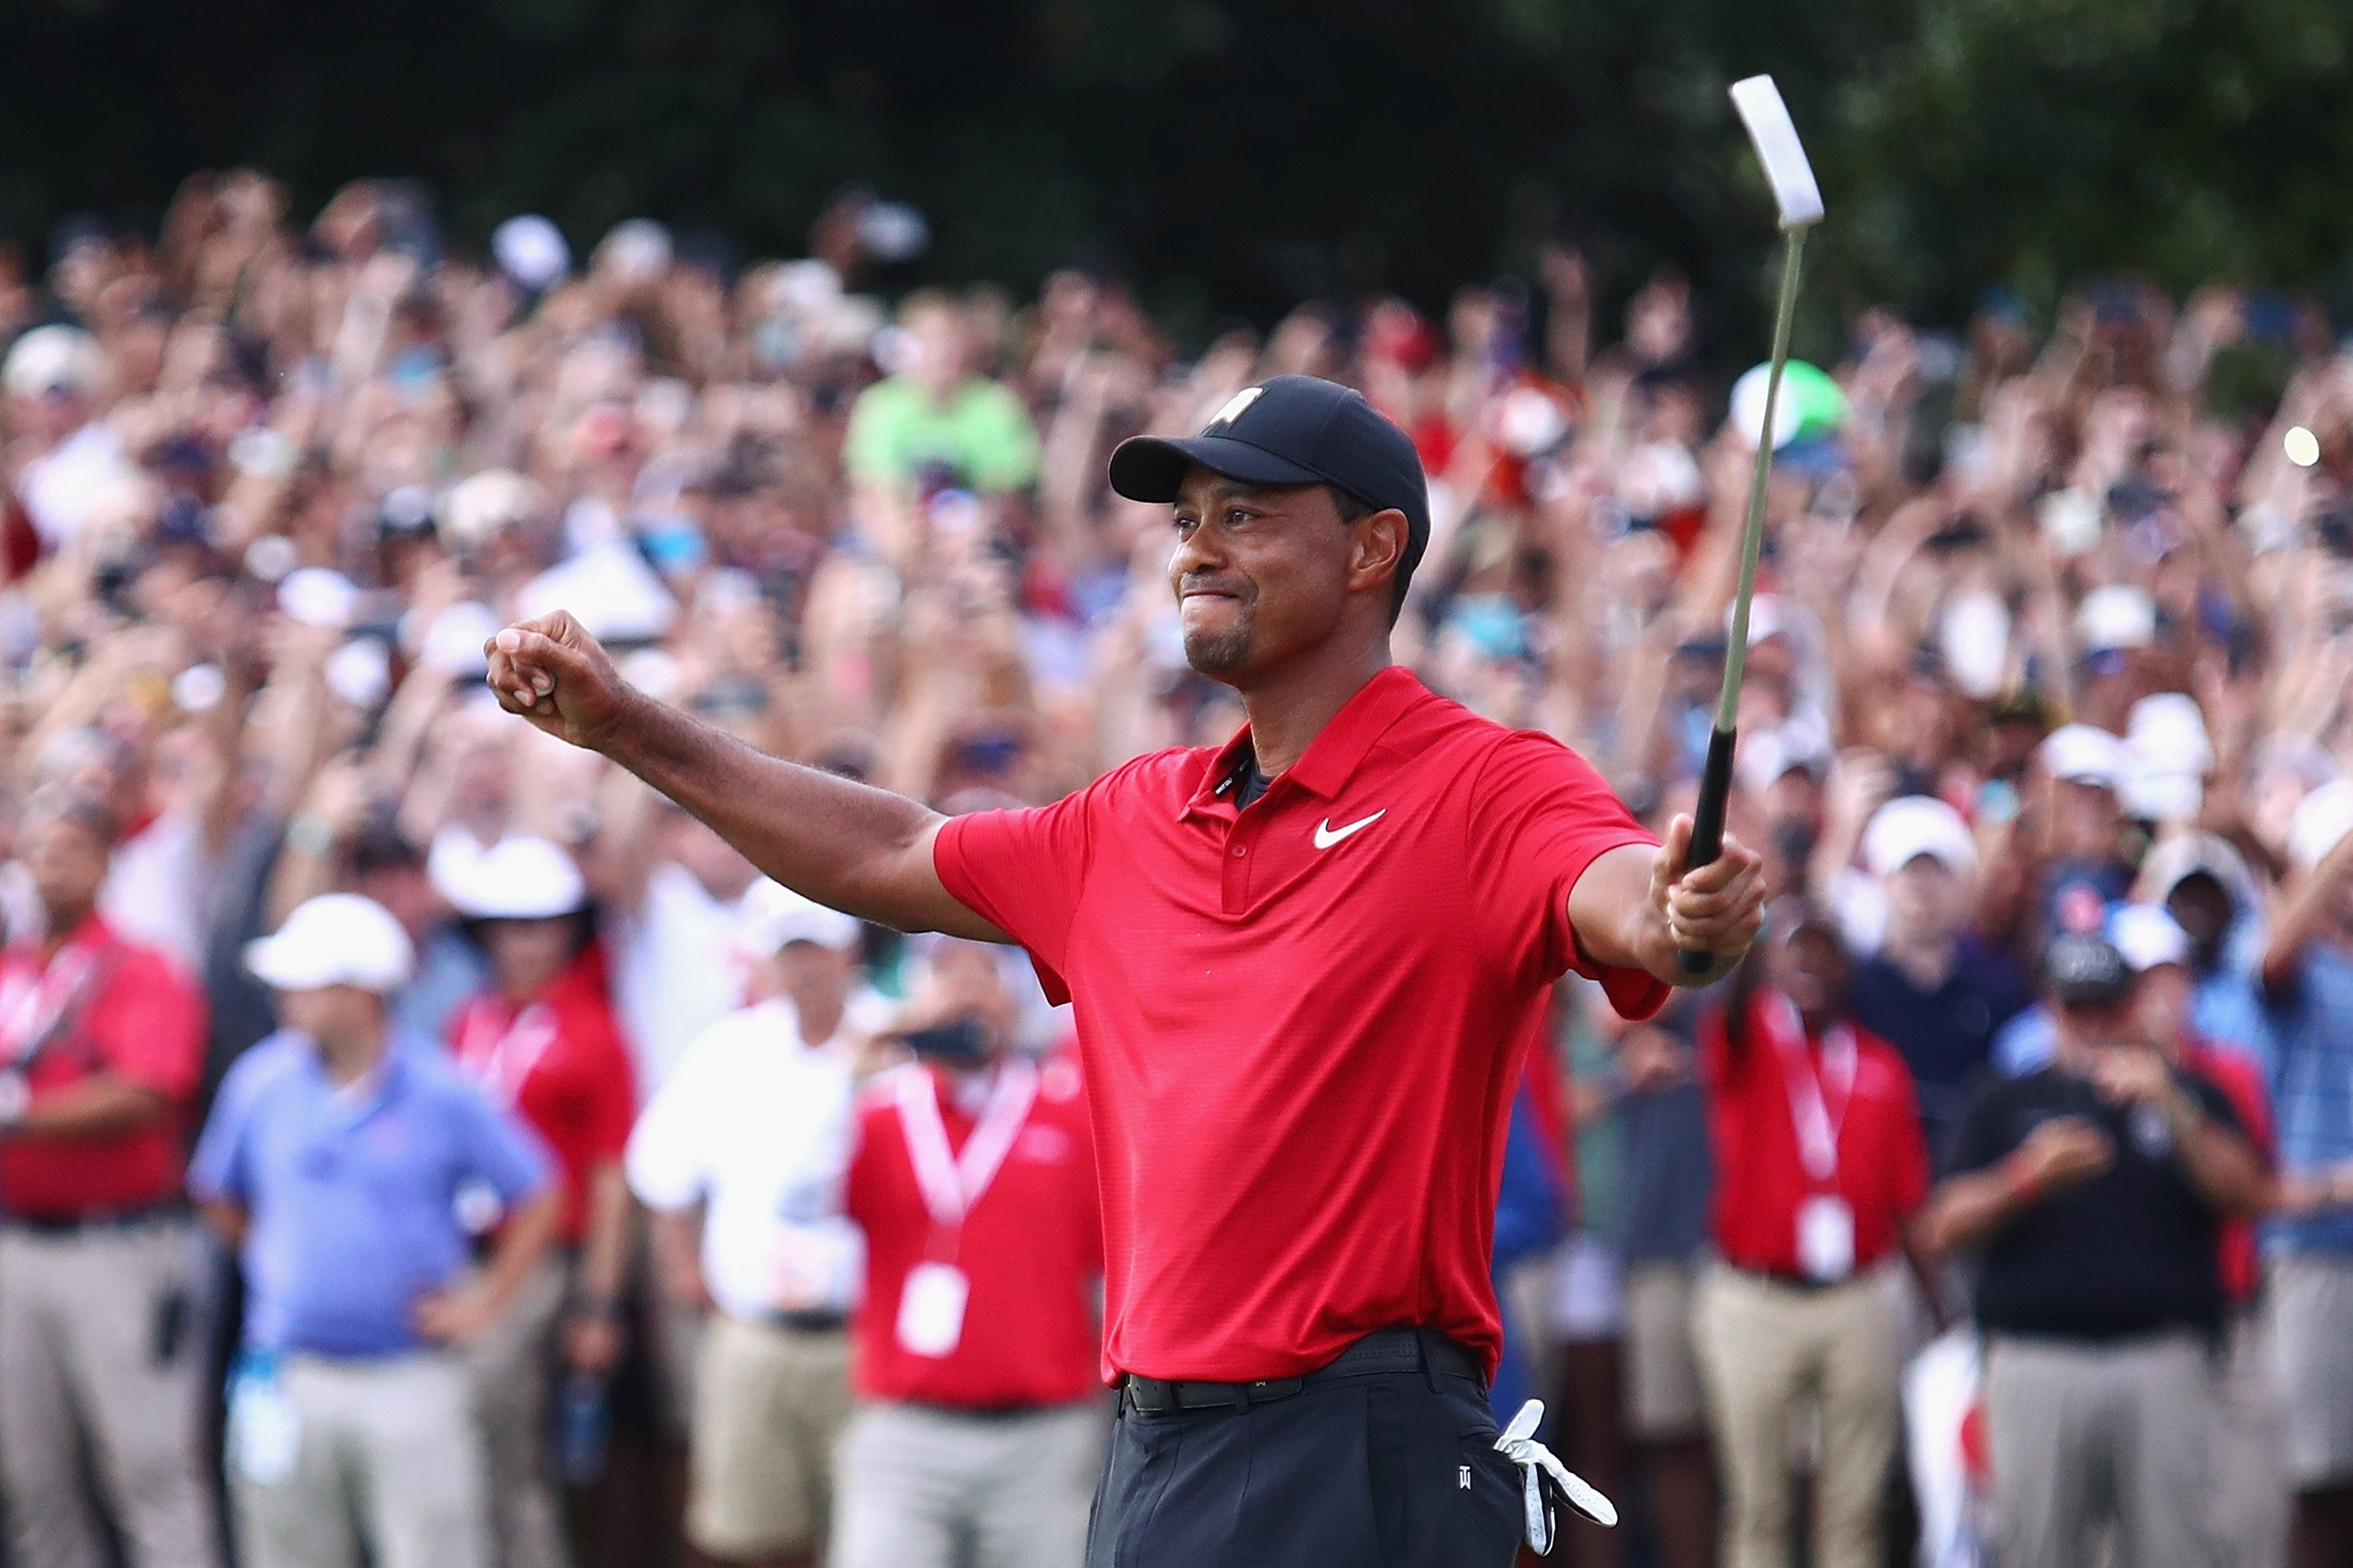 Image Credits: Getty Images / Tim Bradbury | Tiger Woods of the United States celebrates making a par on the 18th green to win the TOUR Championship at East Lake Golf Club on September 23, 2018 in Atlanta, Georgia.